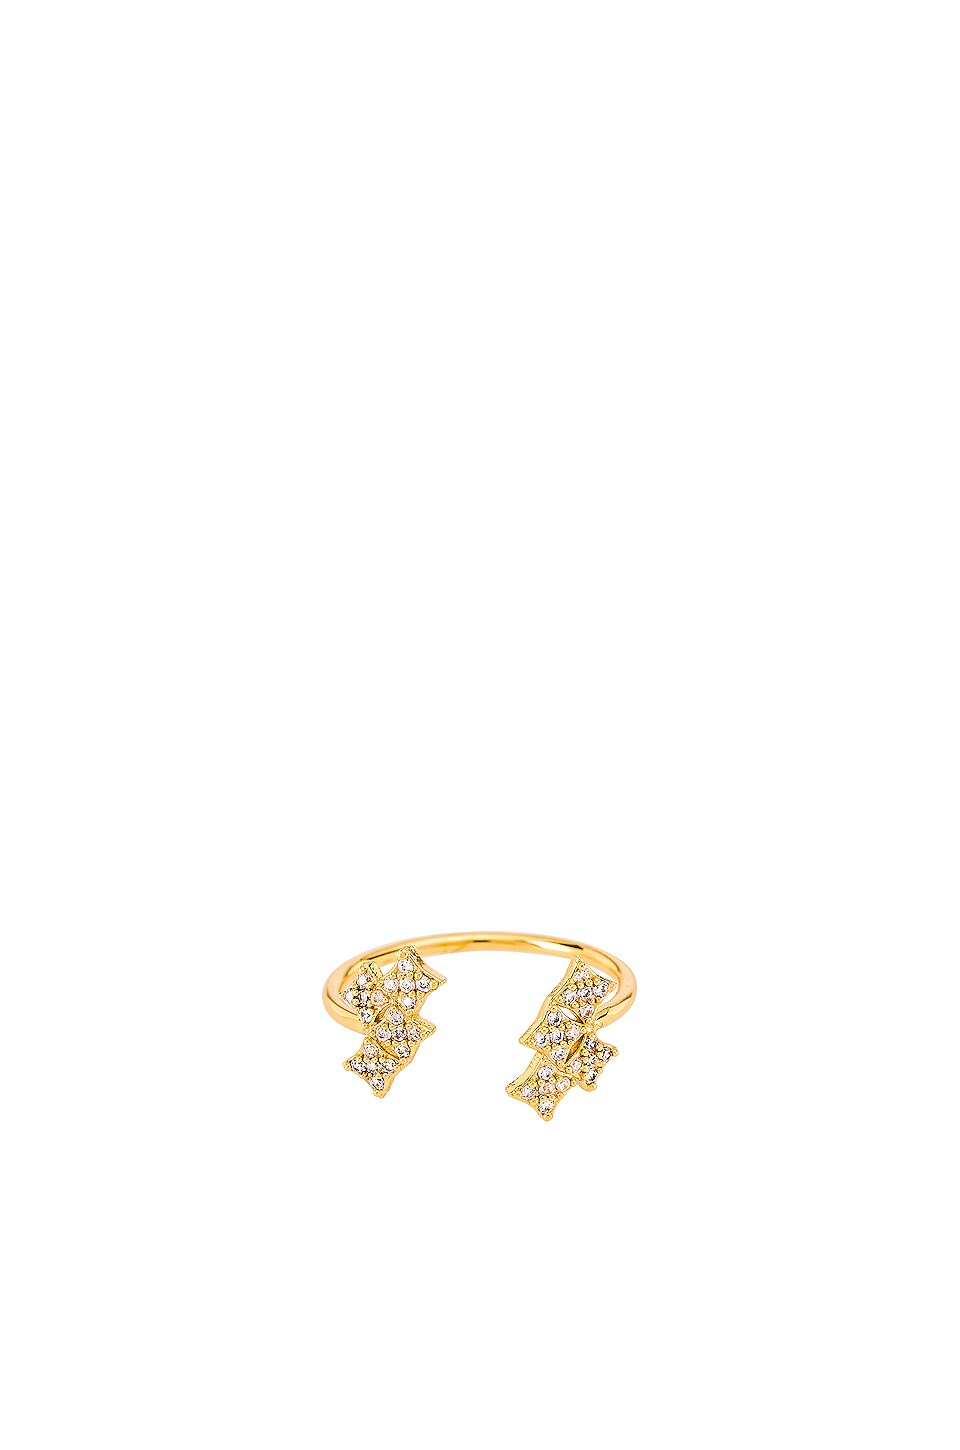 ERTH Starry Night Cluster Ring in Gold